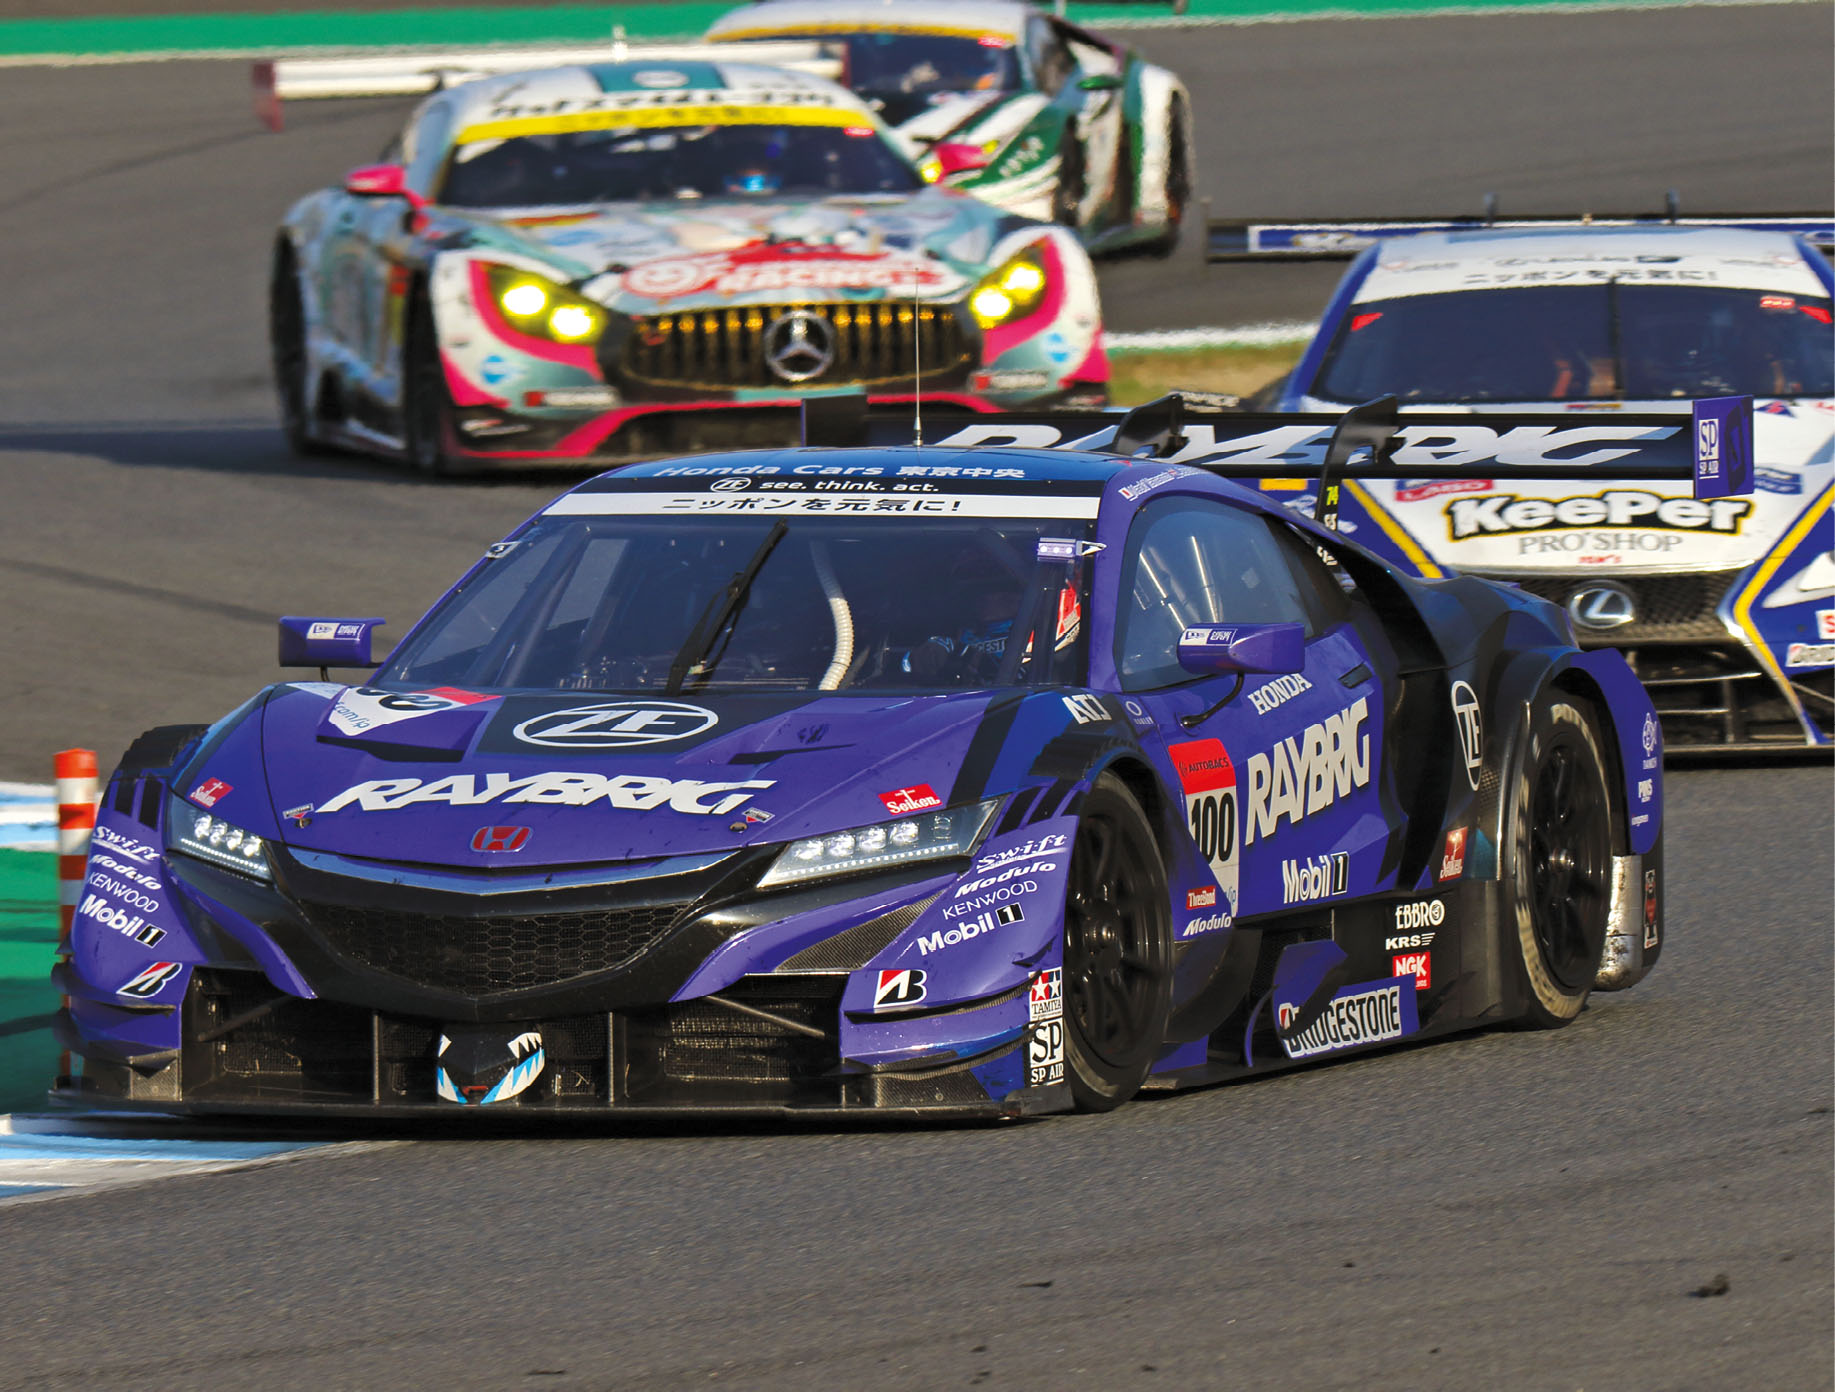 Button has gone on to race very successfully in the Japanese Super GT series, winning the 2018 championship